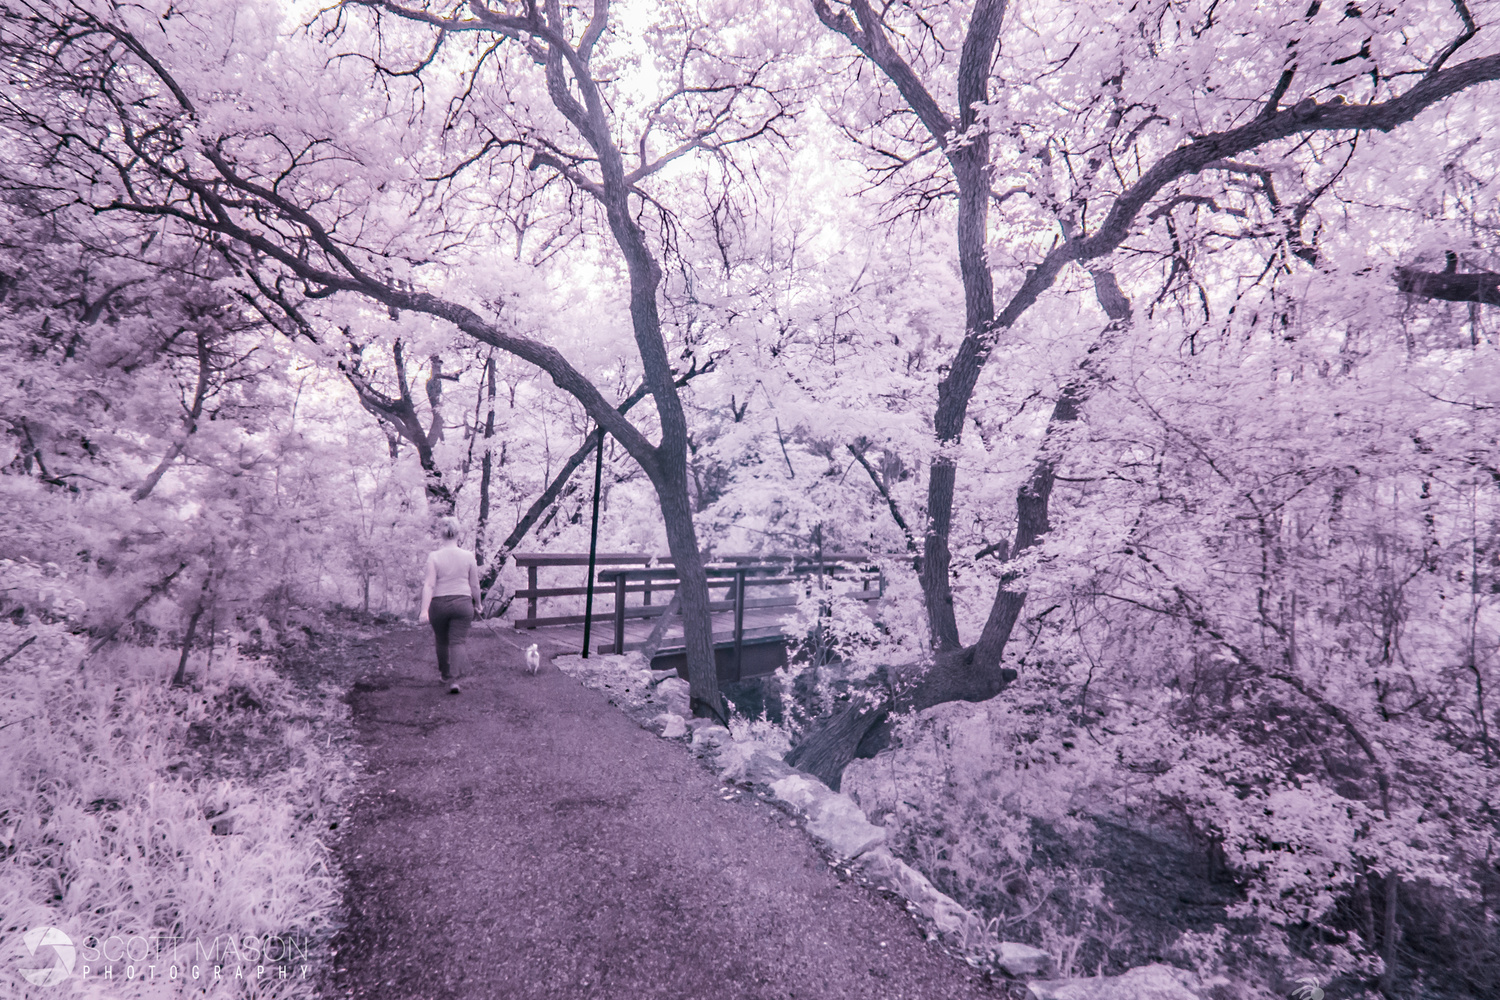 an infrared photo of a nature walk scene